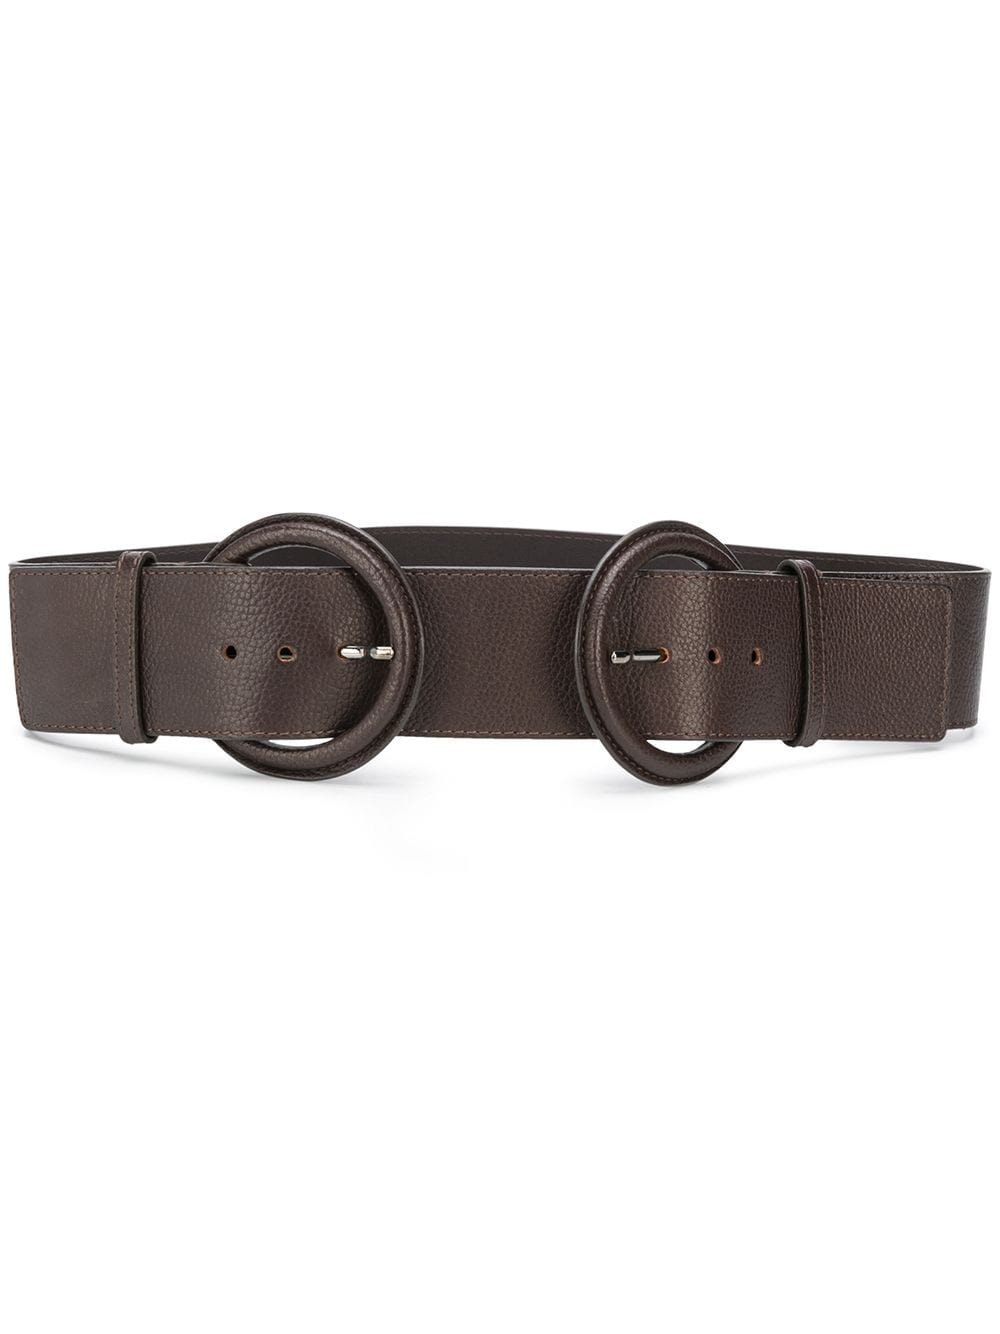 Gianfranco Ferré Pre-Owned 2000s double buckle belt - Brown von Gianfranco Ferré Pre-Owned